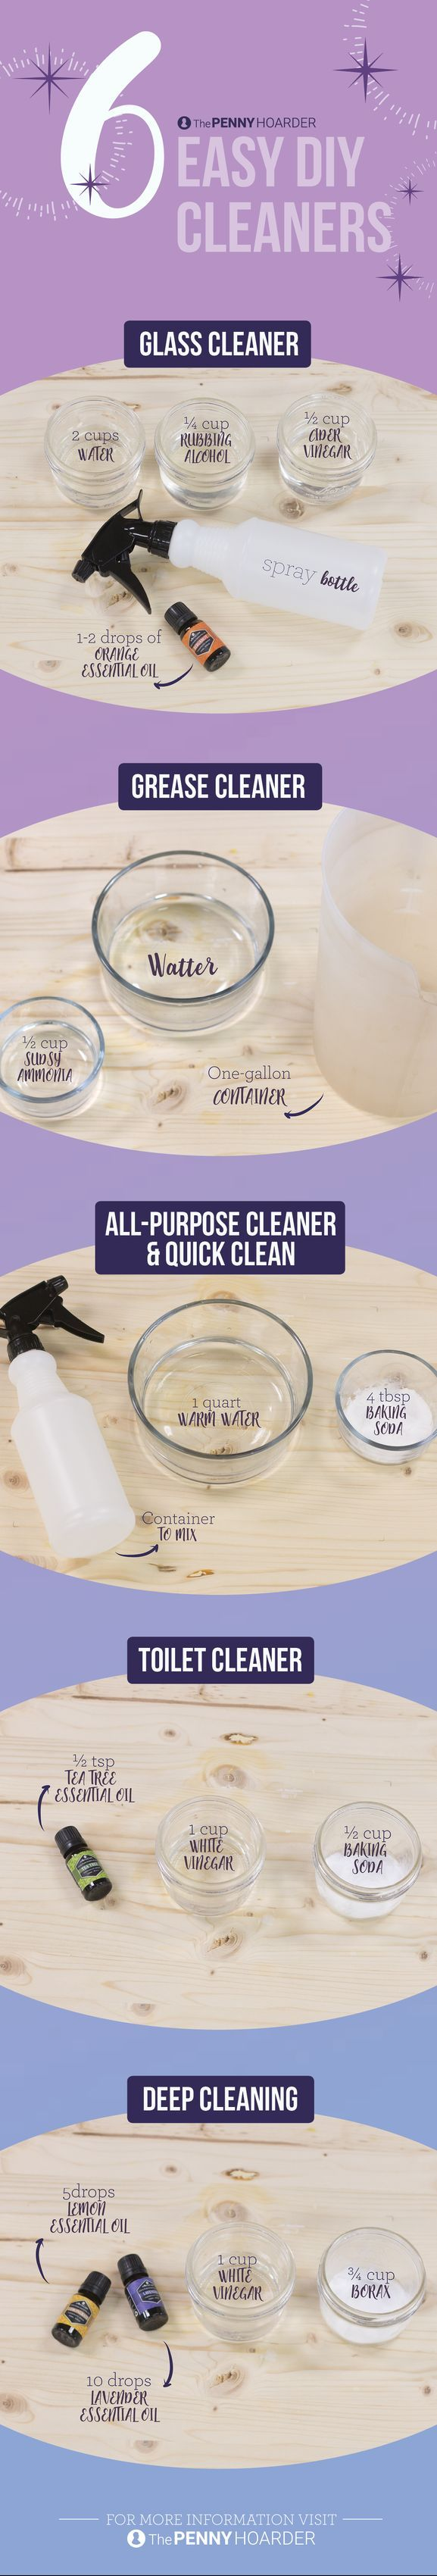 Want to use eco-friendly cleaners but don't want to spend a ton of money? Try these recipes for homemade cleaning supplies that use inexpensive and mostly natural ingredients. You'll have a sparkling-clean house in no time!